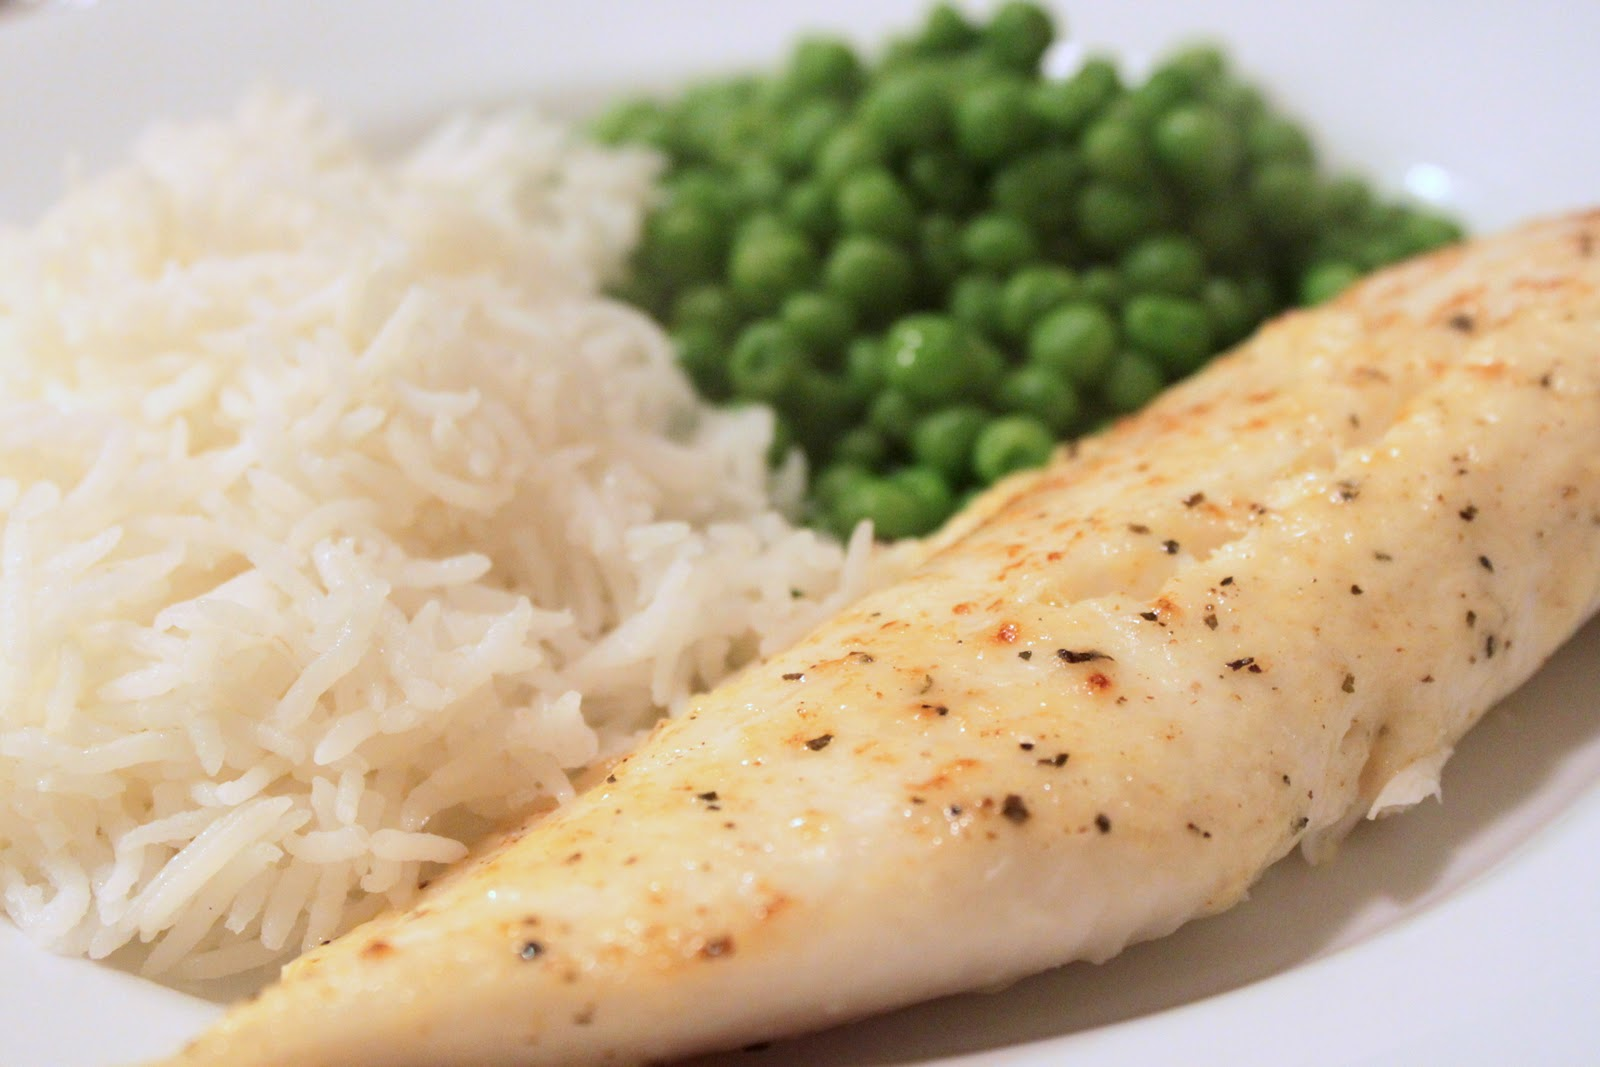 The Cook Next Door: Broiled Tilapia Parmesan